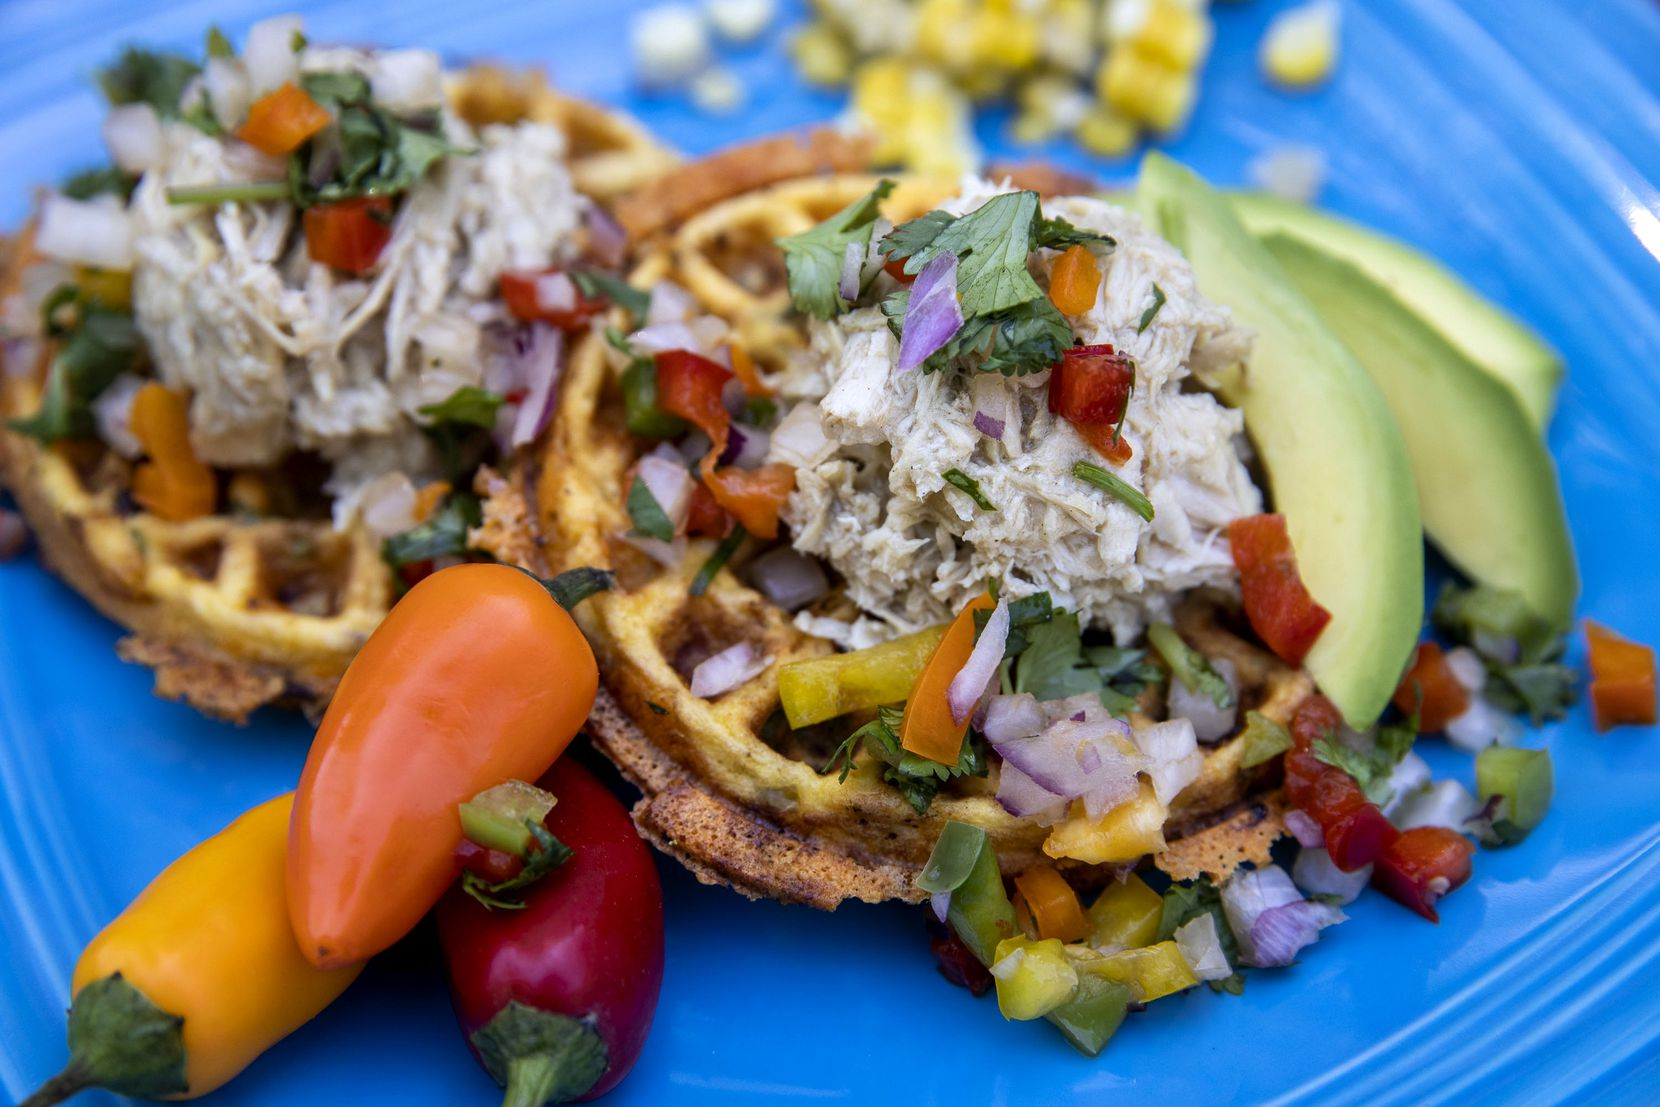 Tex-Mex chaffle is topped with shredded chicken, avocado, mango pico, and cilantro.